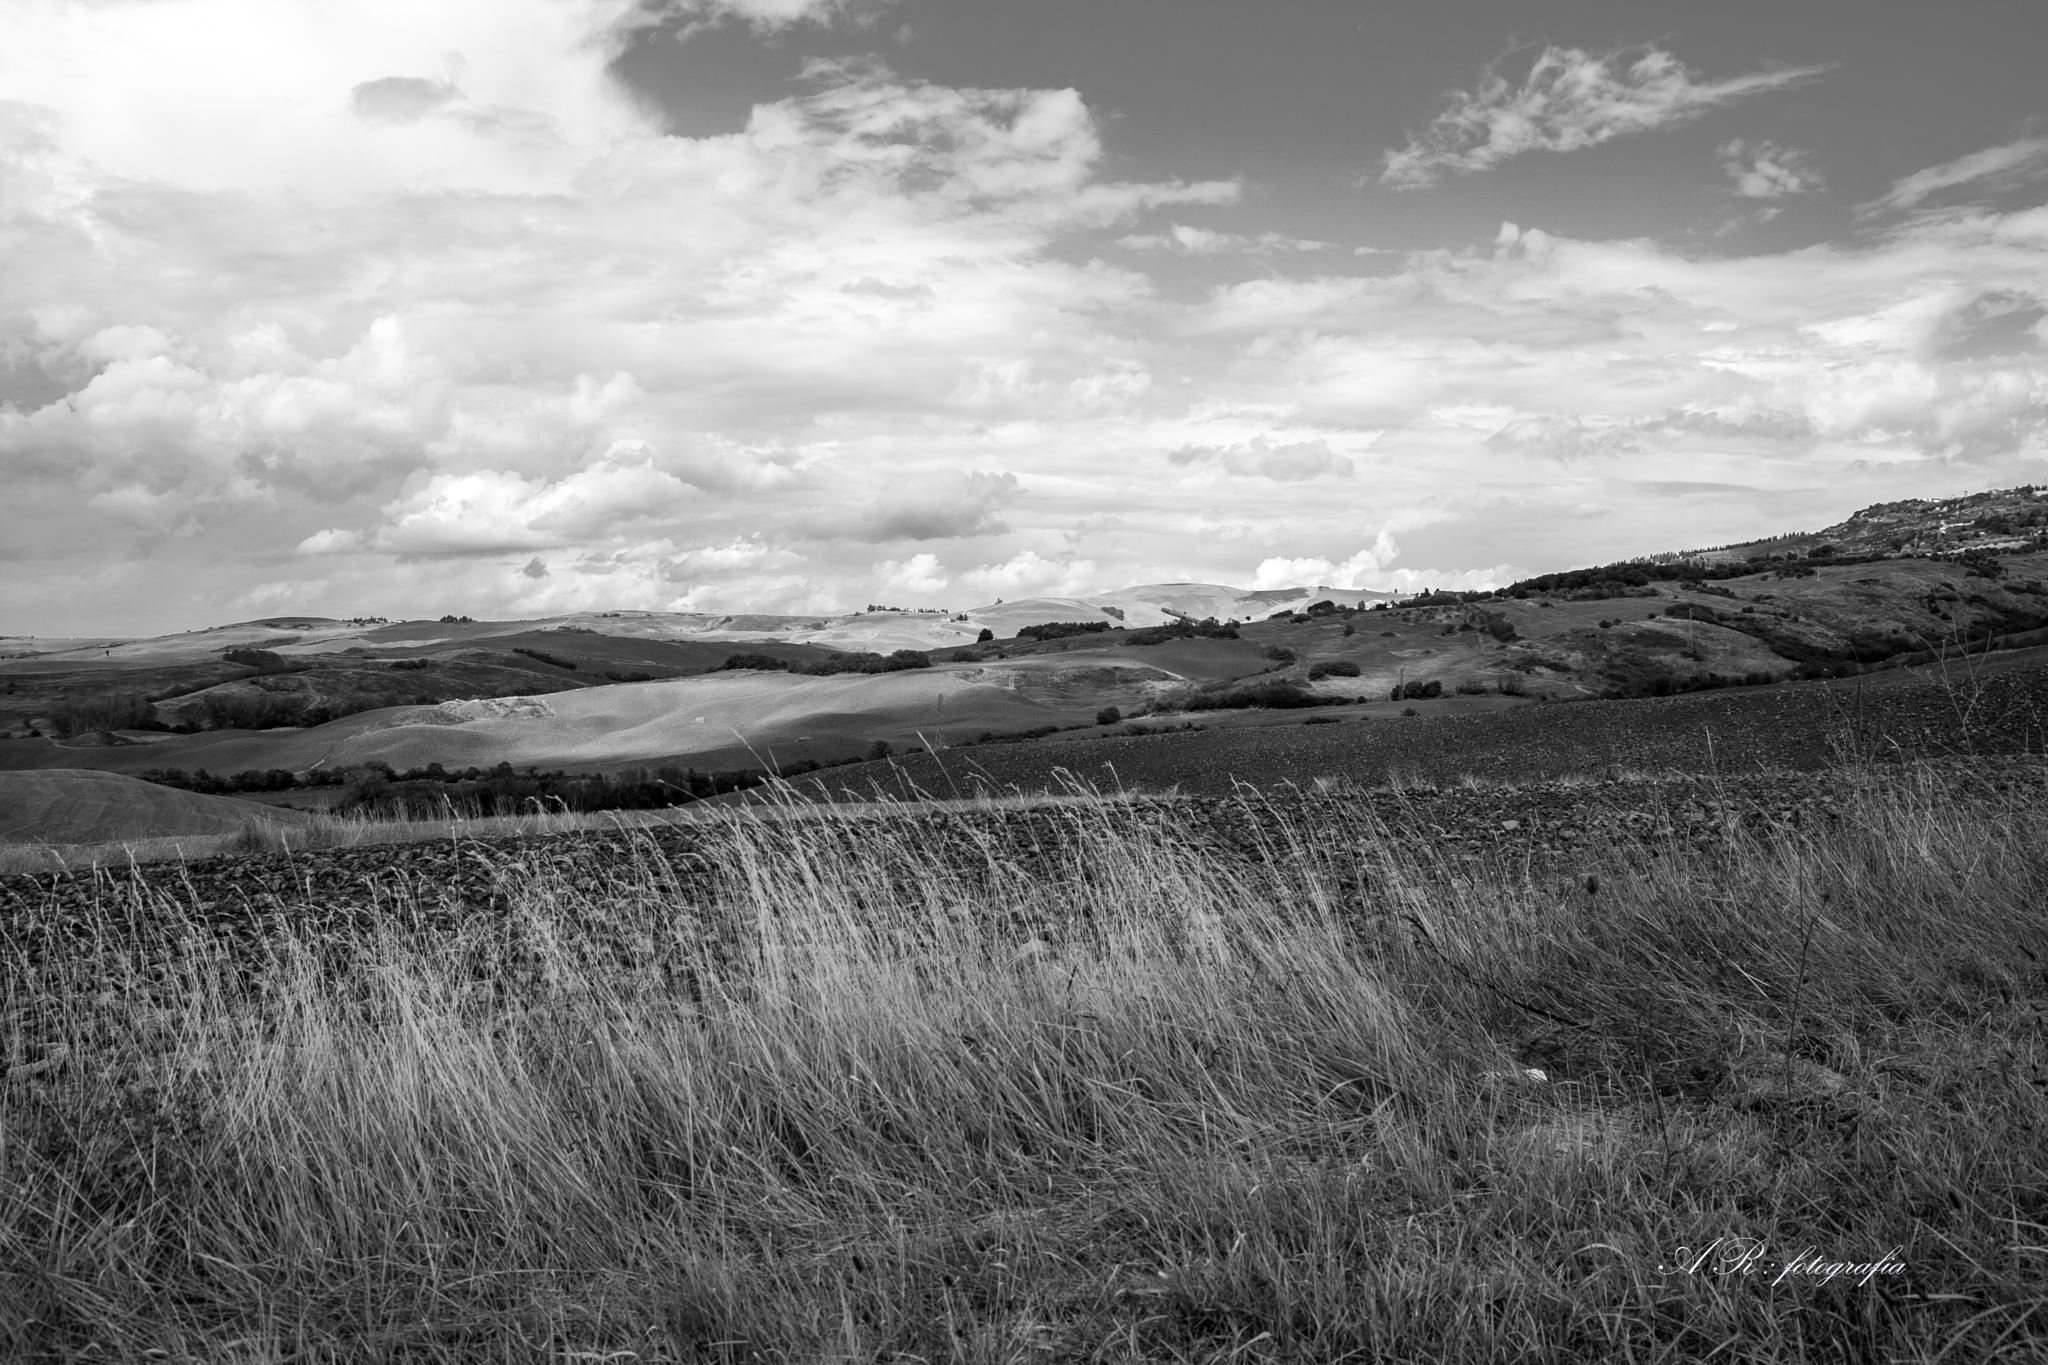 Tuscan hills (landscape) by adriano.rossi.7965